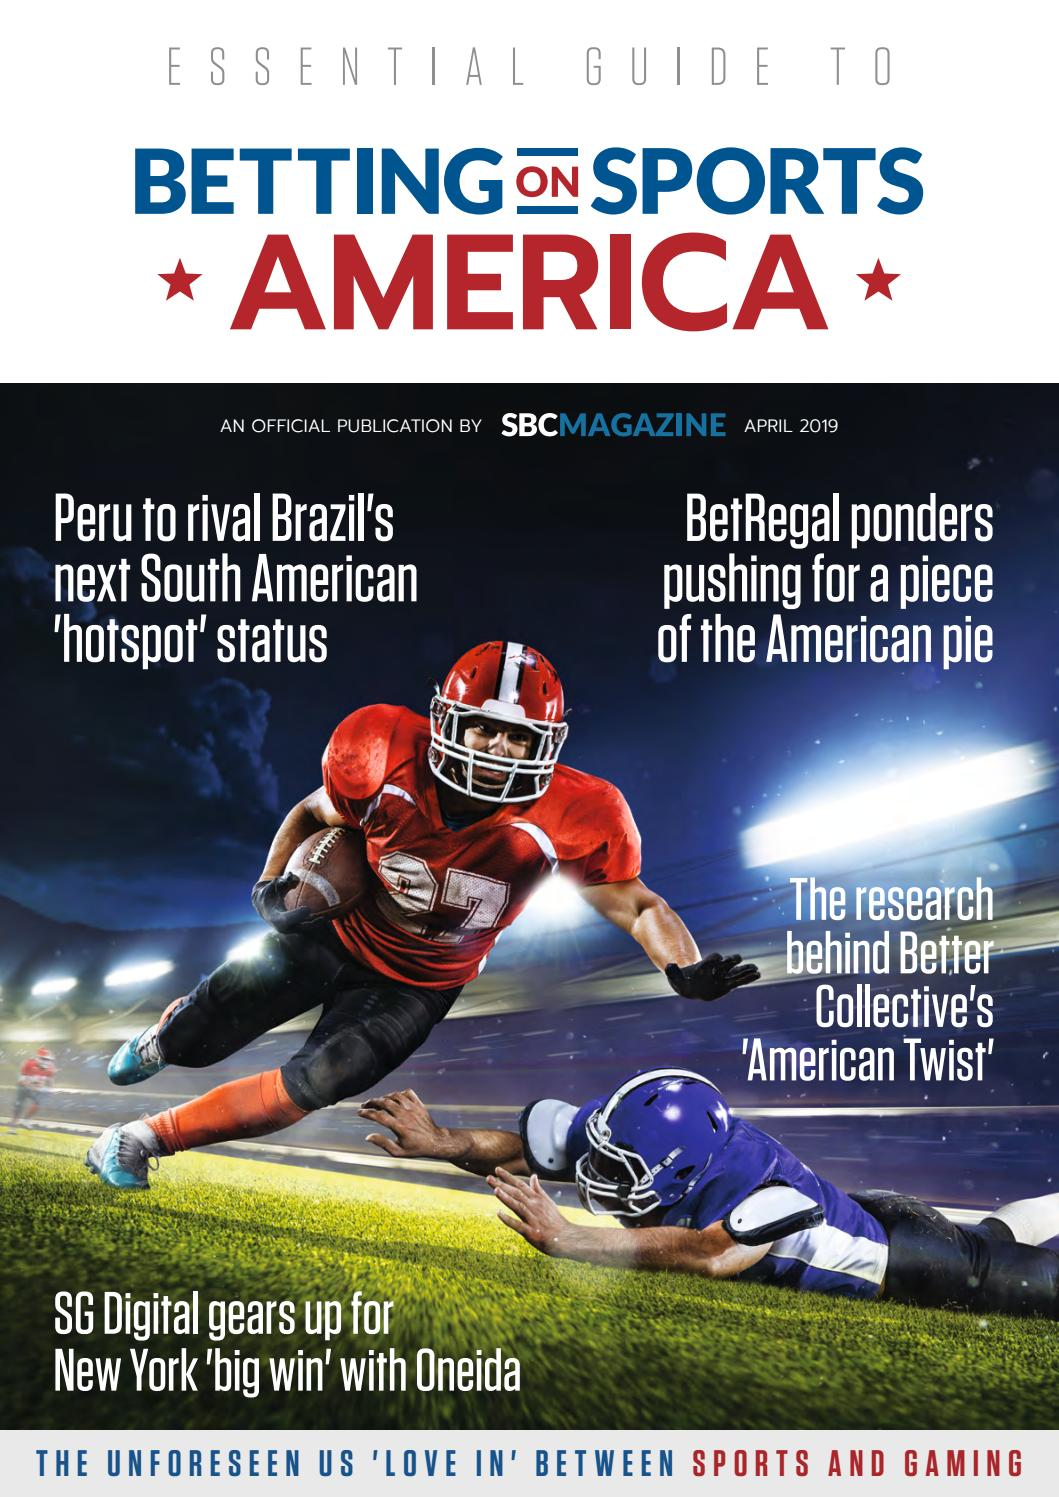 American sports betting aiding and abetting international law